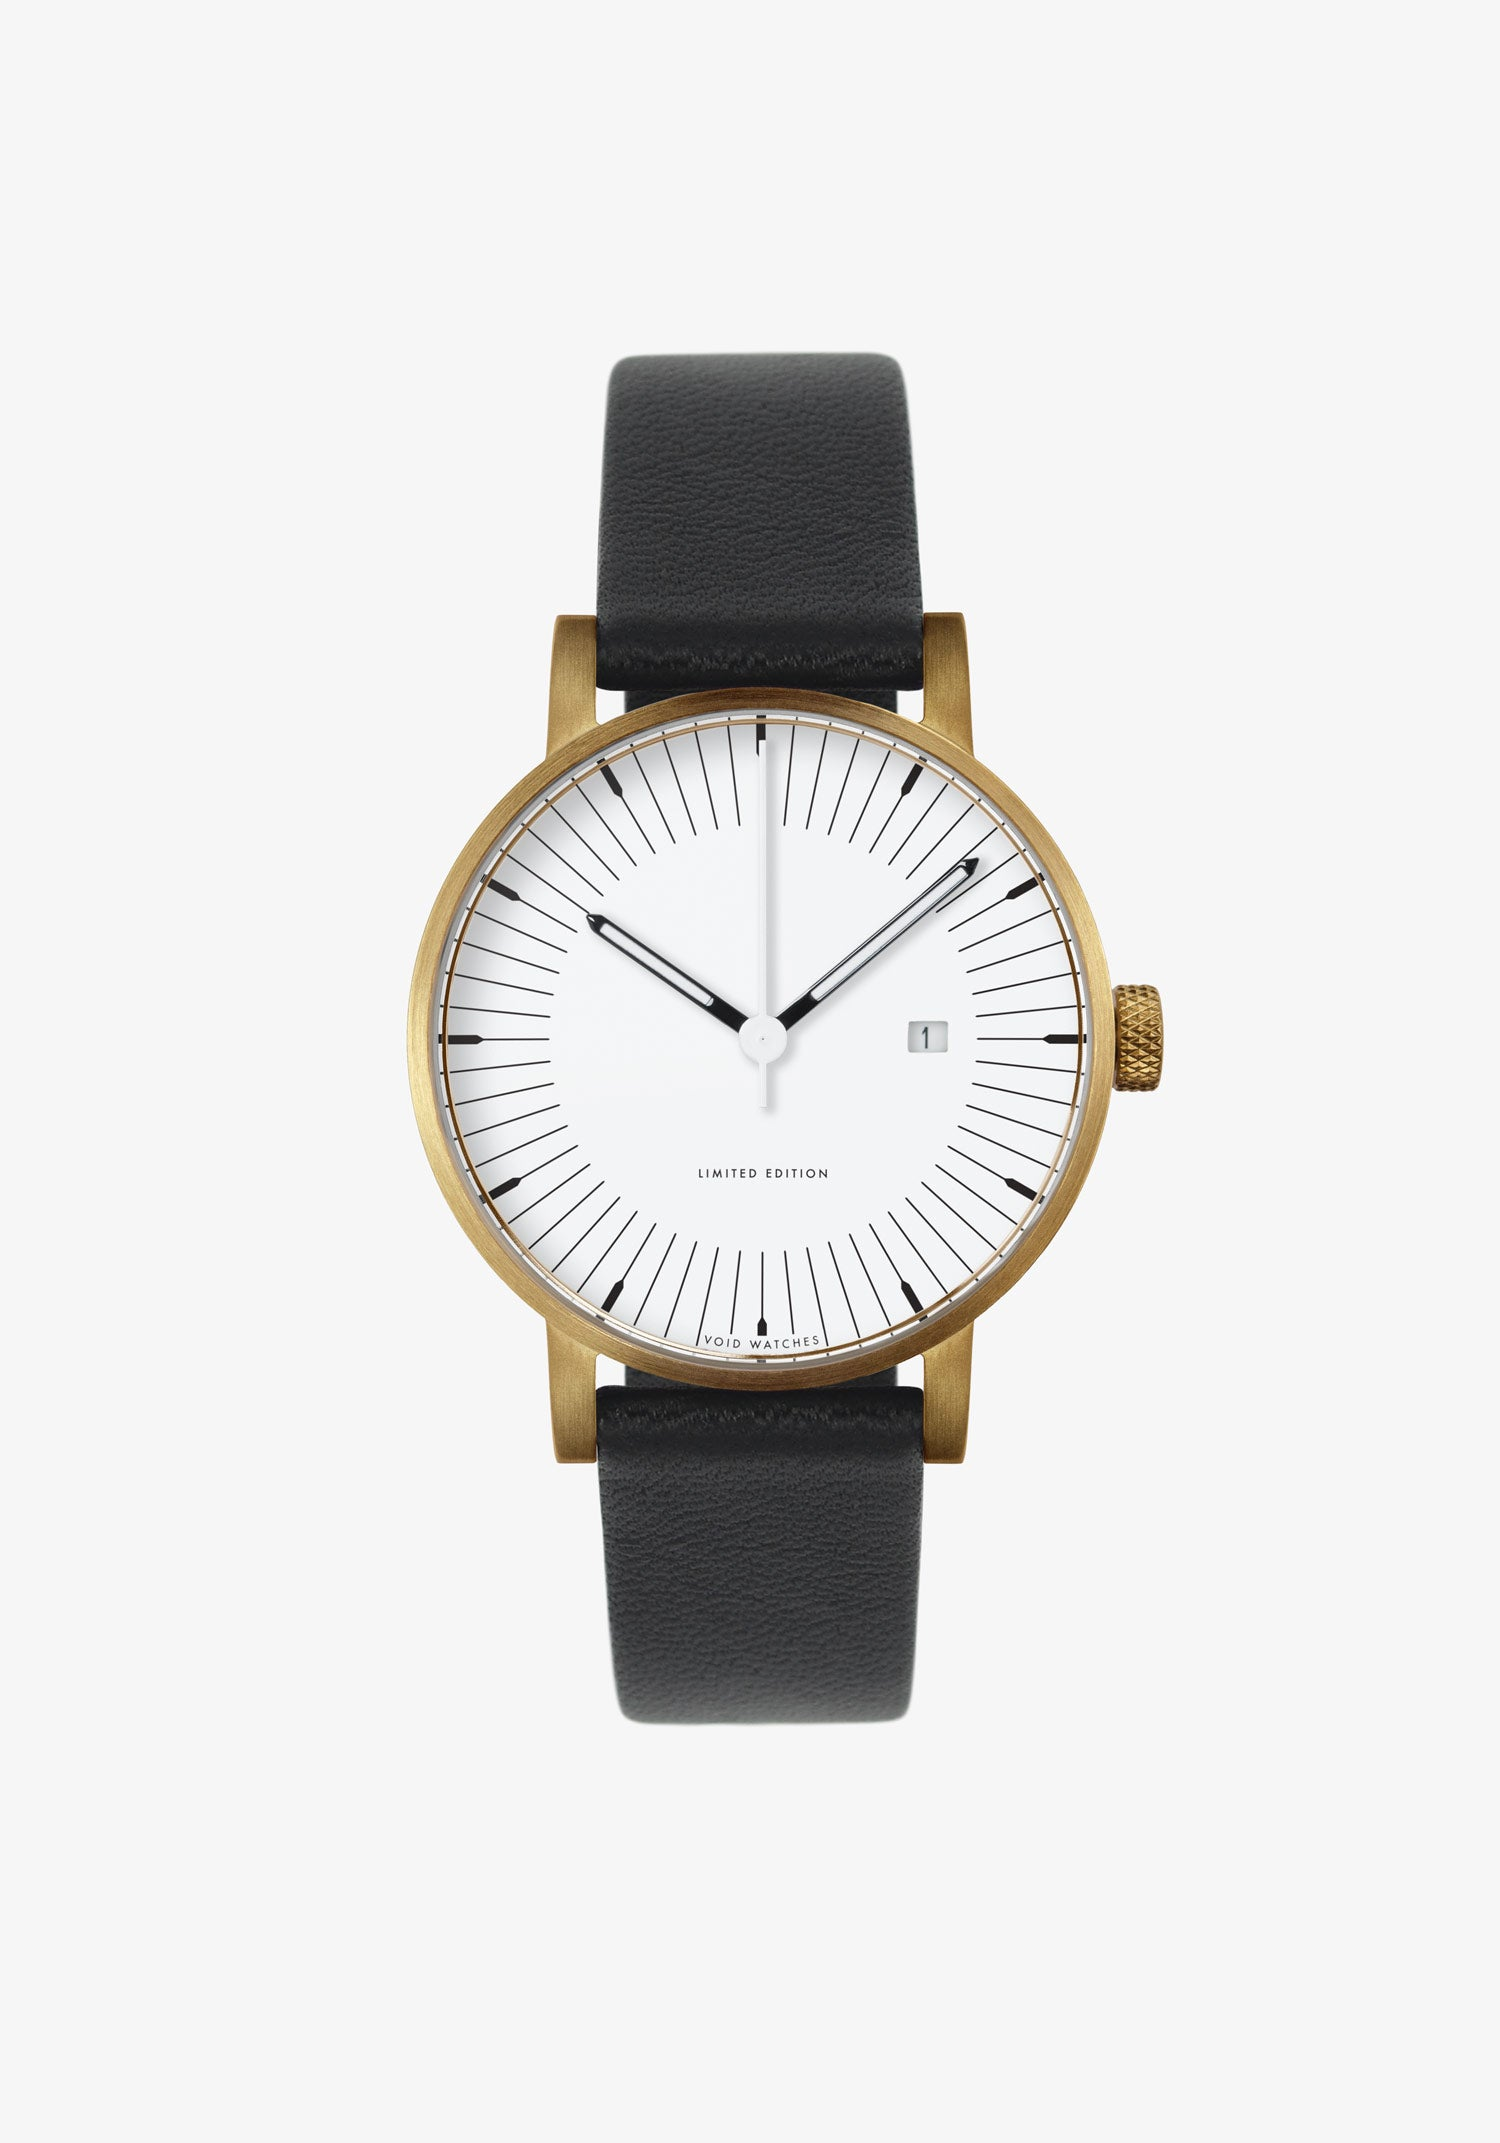 The MoMA-MkII by VOID Watches. A limited edition 70s inspired watch with black leather straps and a gold case.